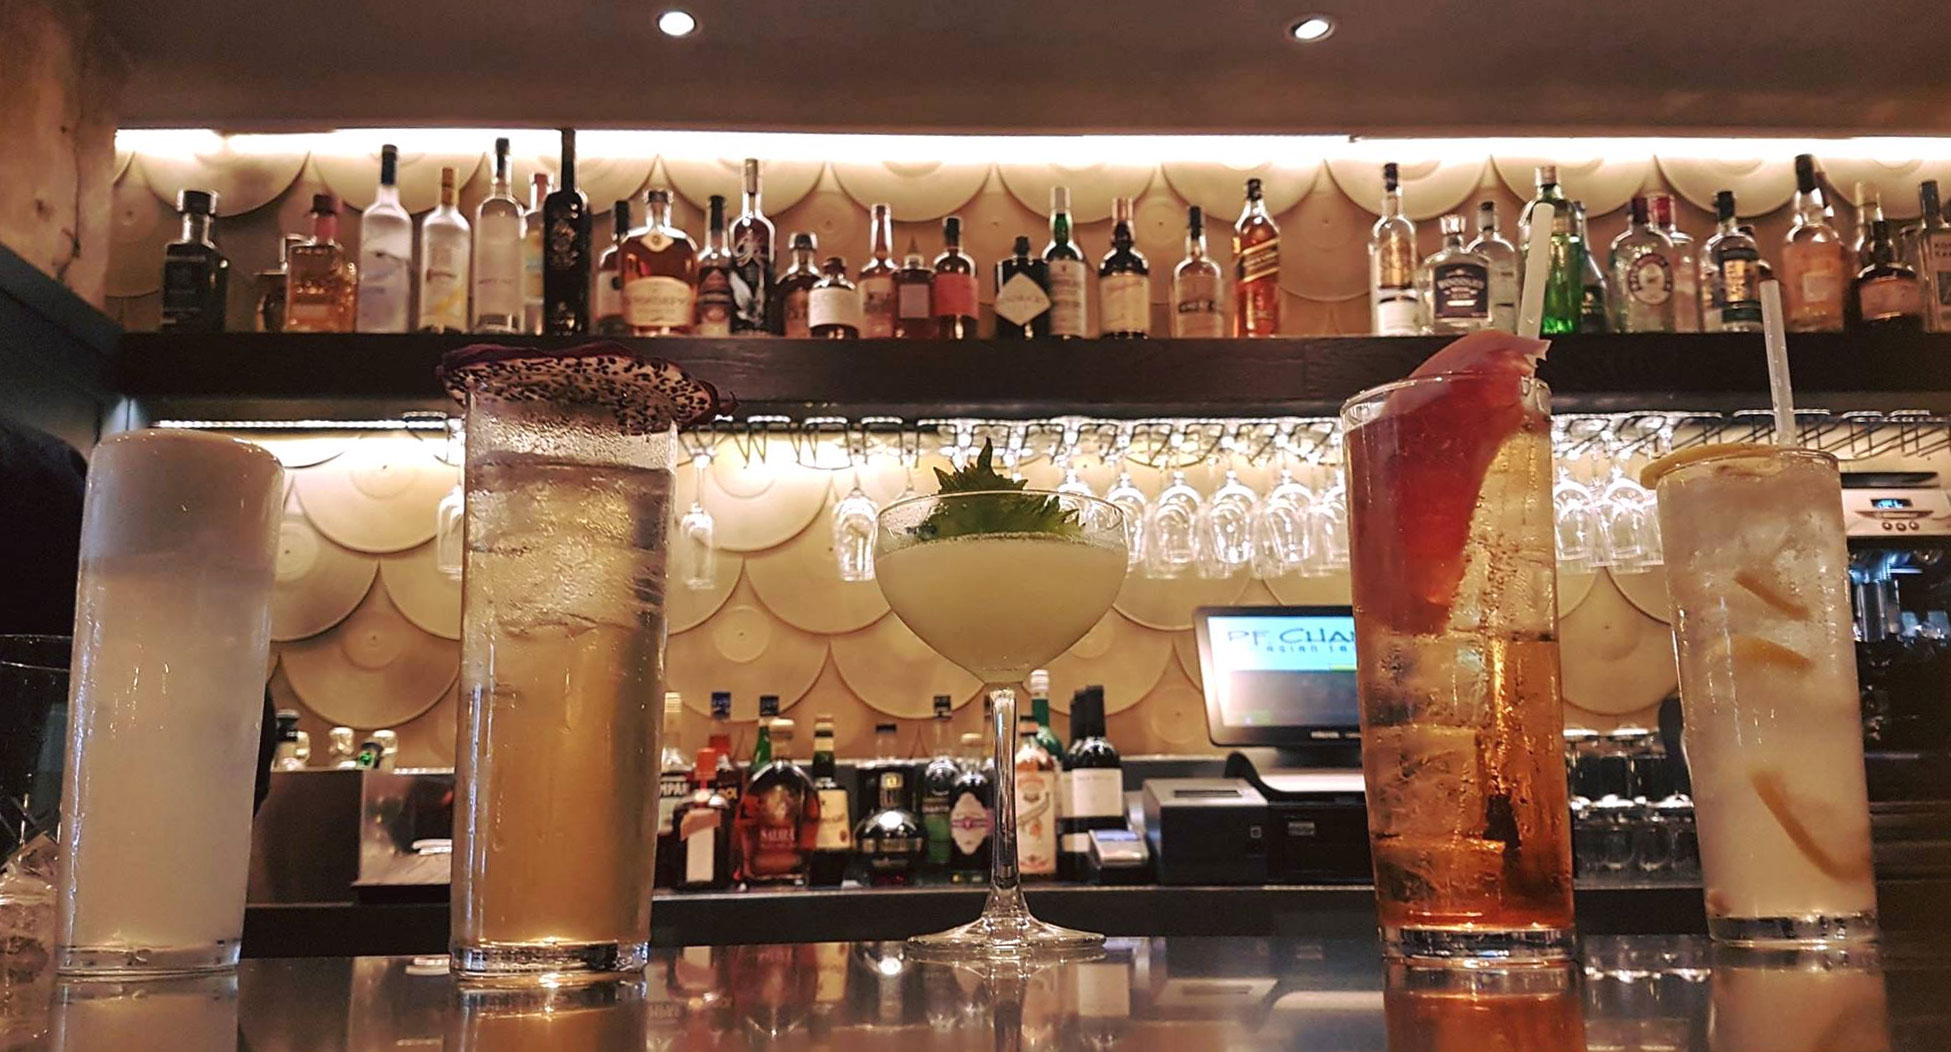 PF Chang's cocktails